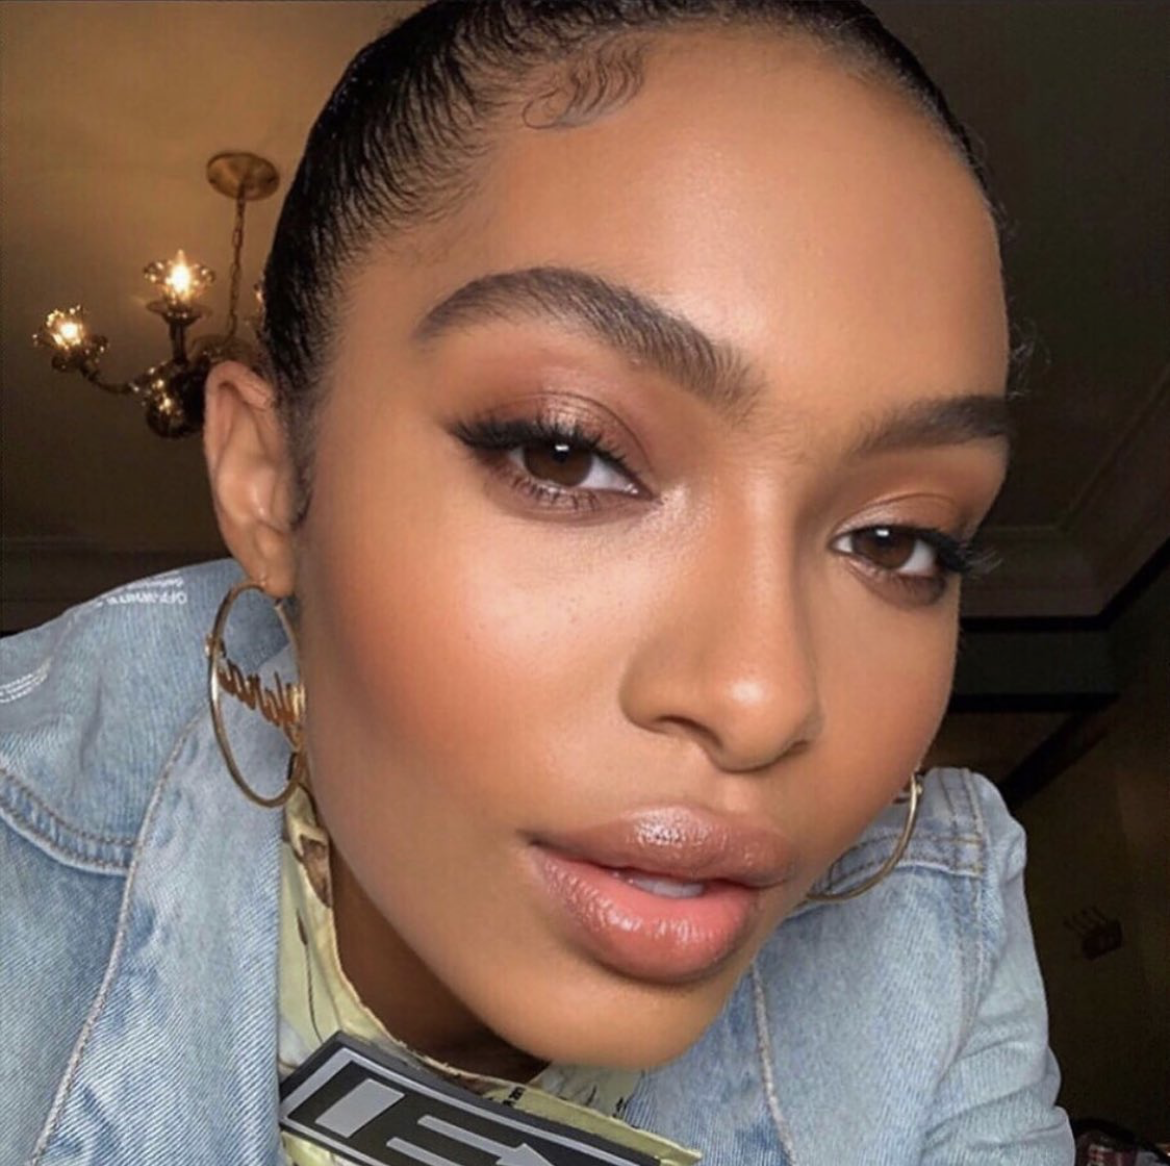 HER SOURCE: The Girls Are All Causing Brow Envy